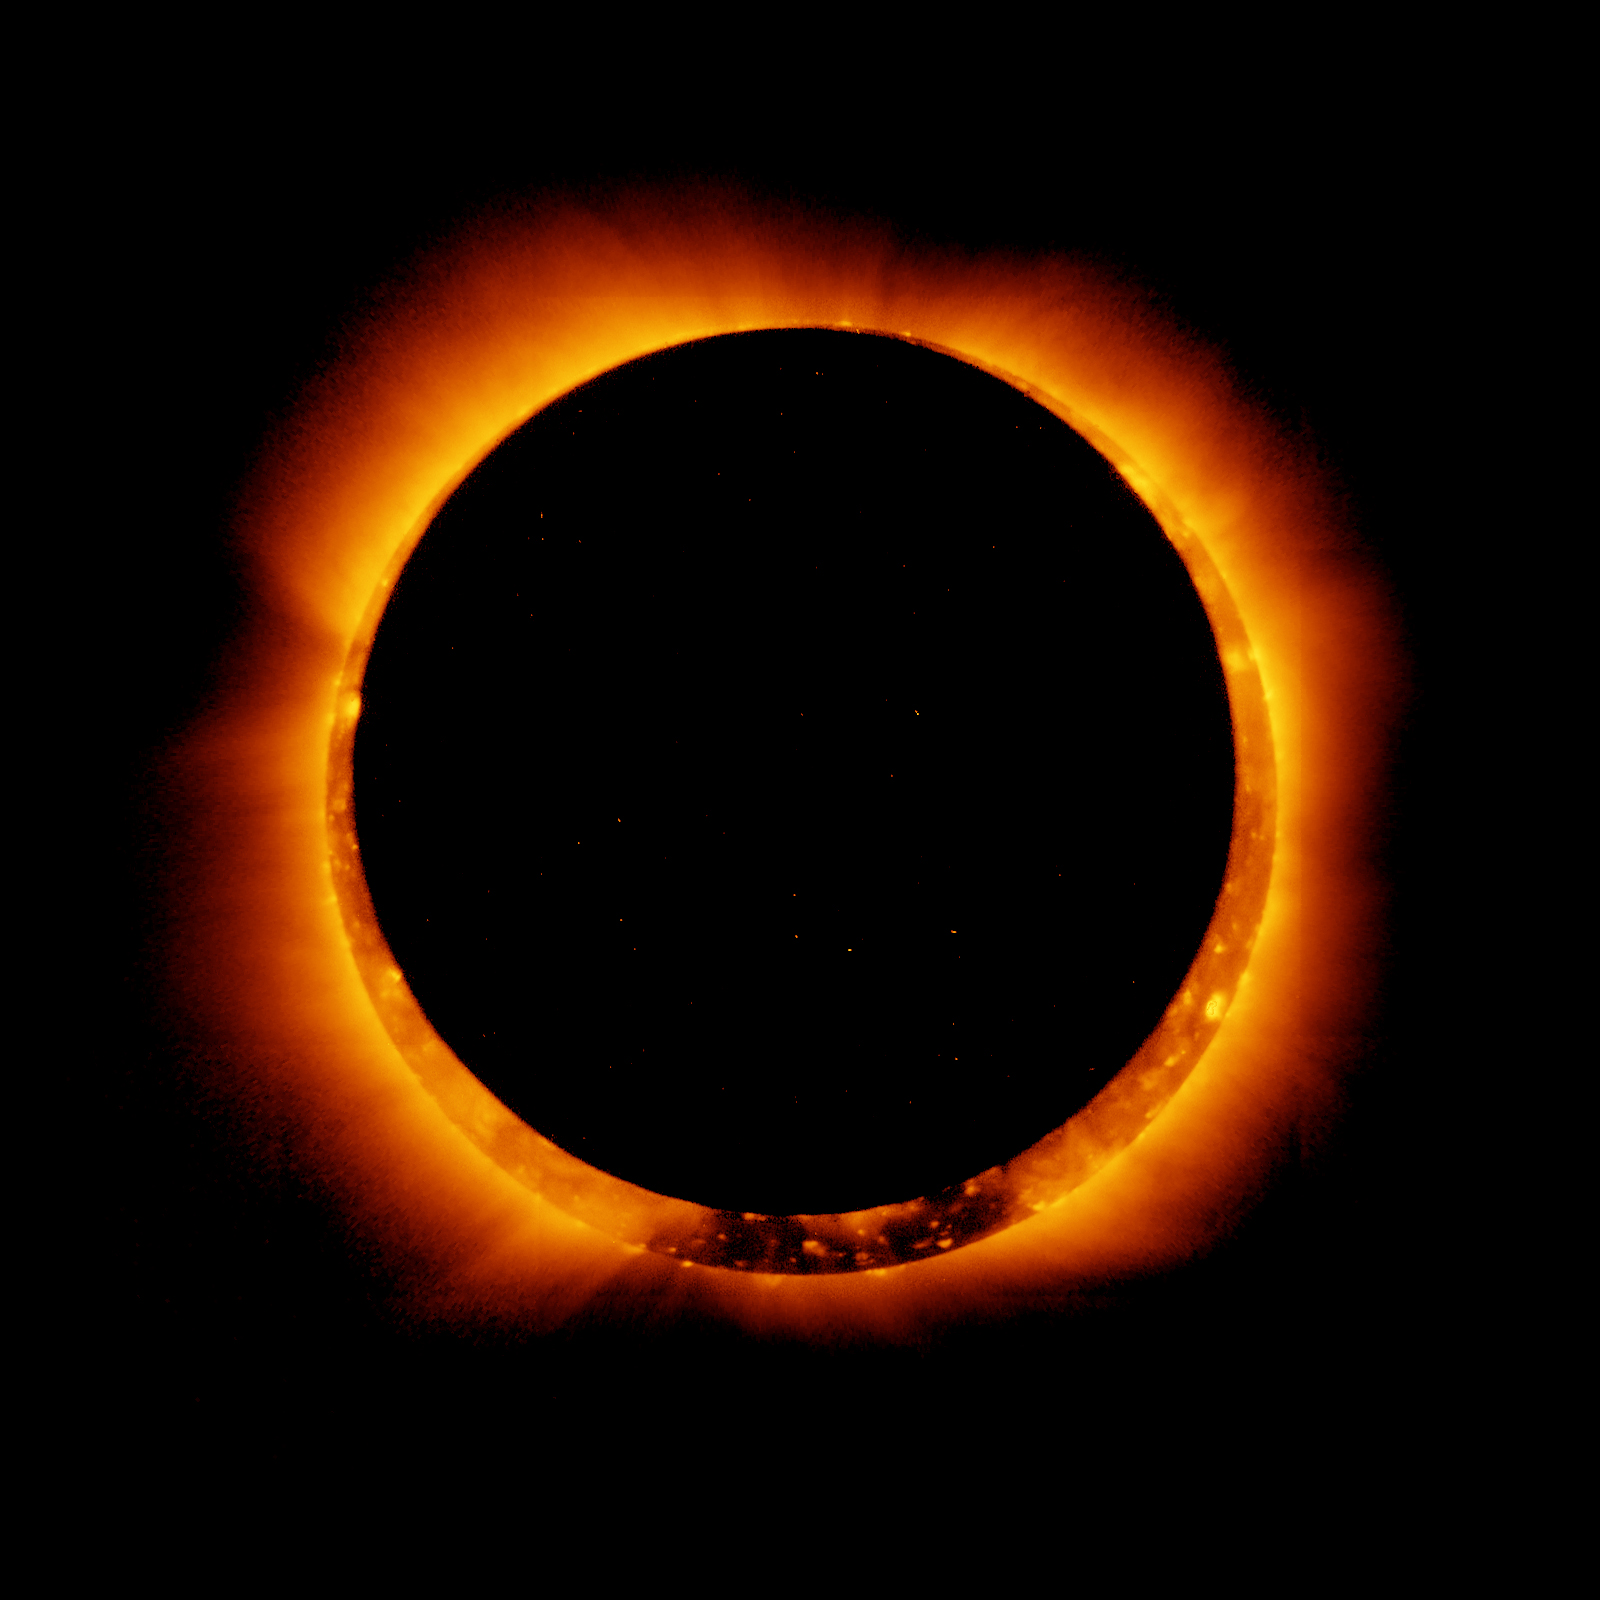 A 'once-in-a-century' solar eclipse happens this time next year